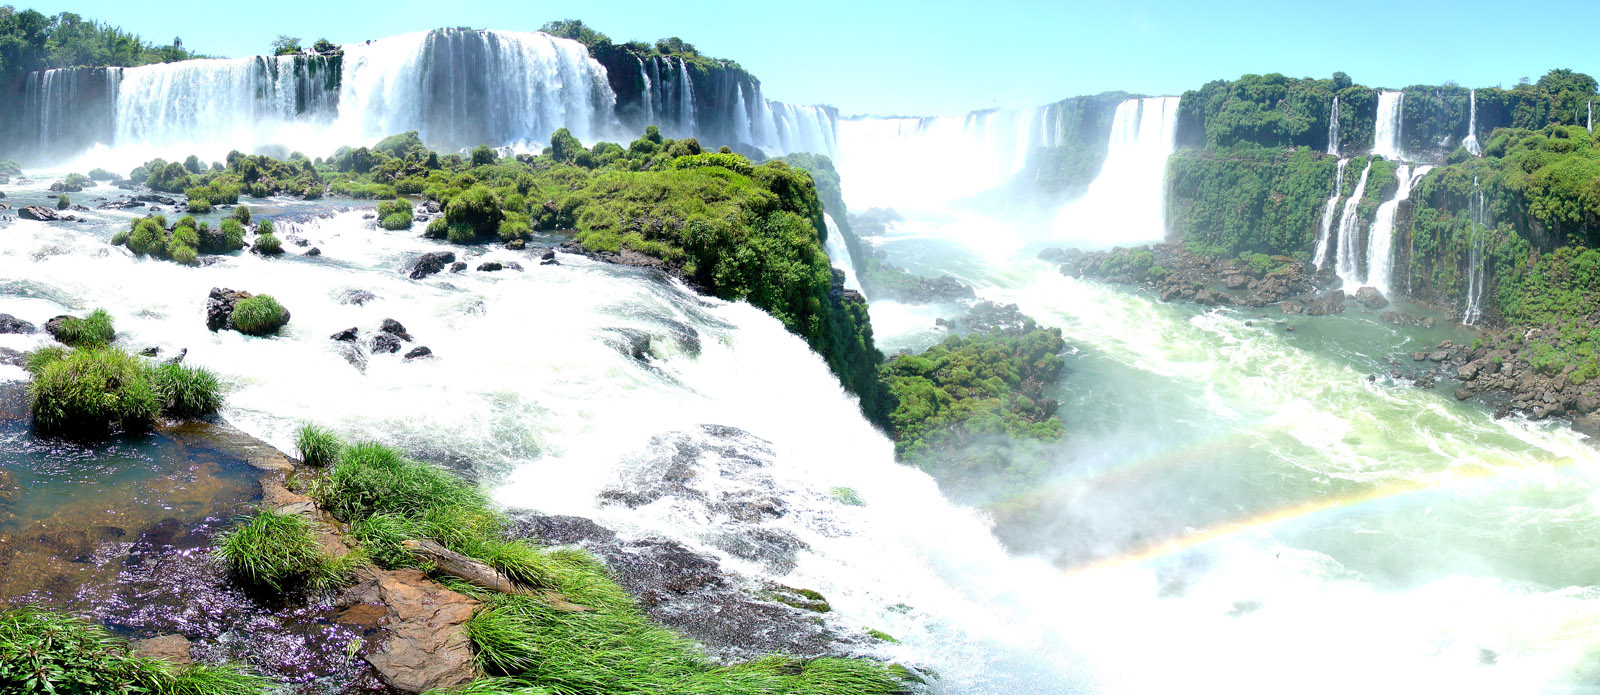 View of Iguazu Falls in Brazil